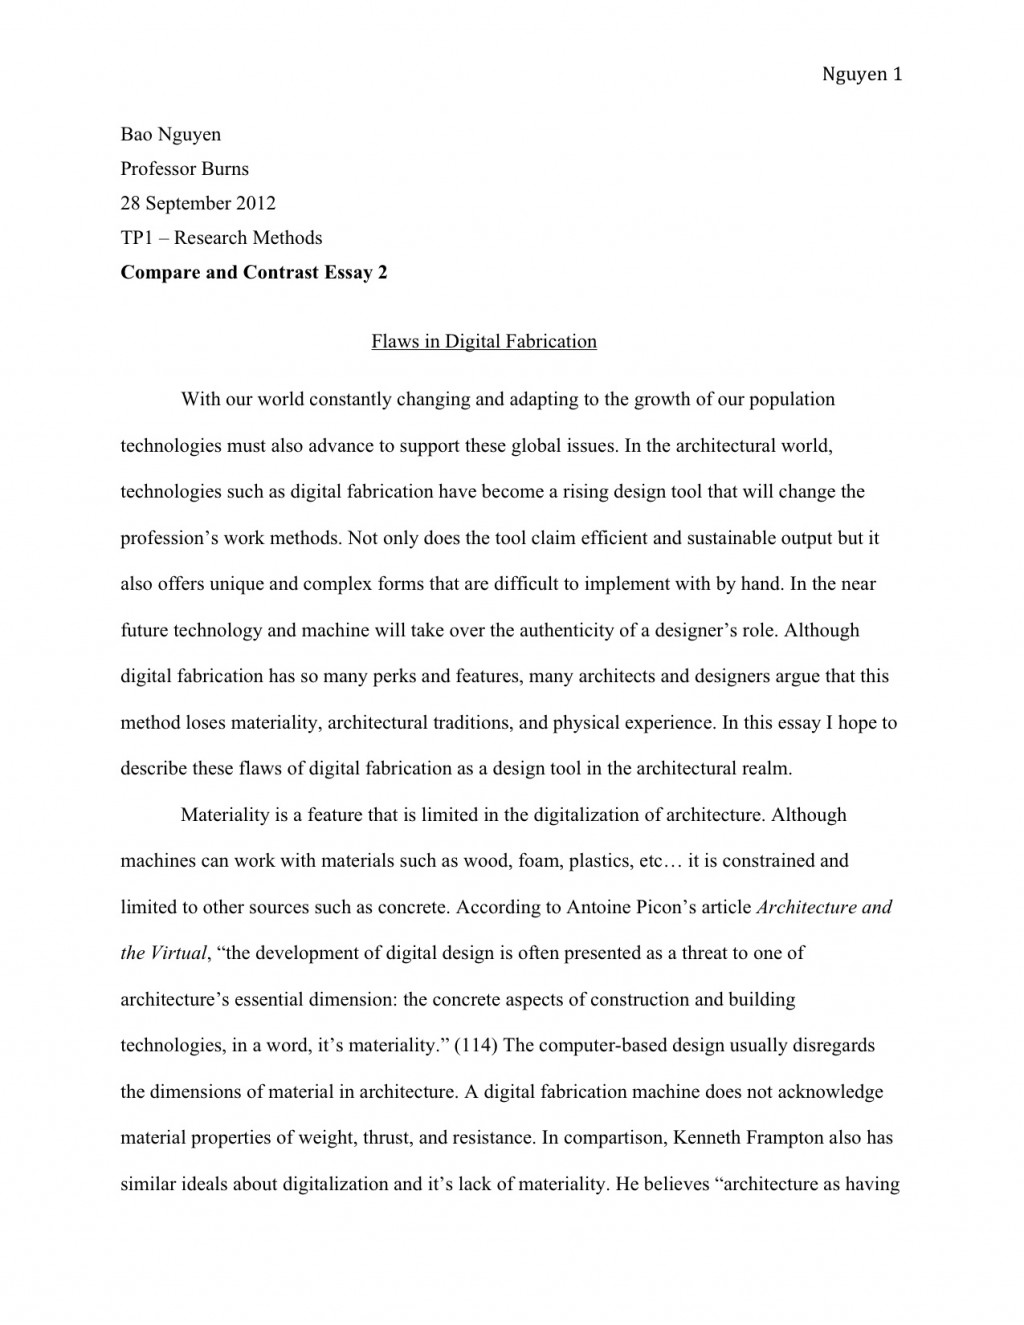 007 How Do You Write An Essay Example Tp1 3 Unbelievable A Good Outline To Introduction Paragraph Argumentative In Third Person Large